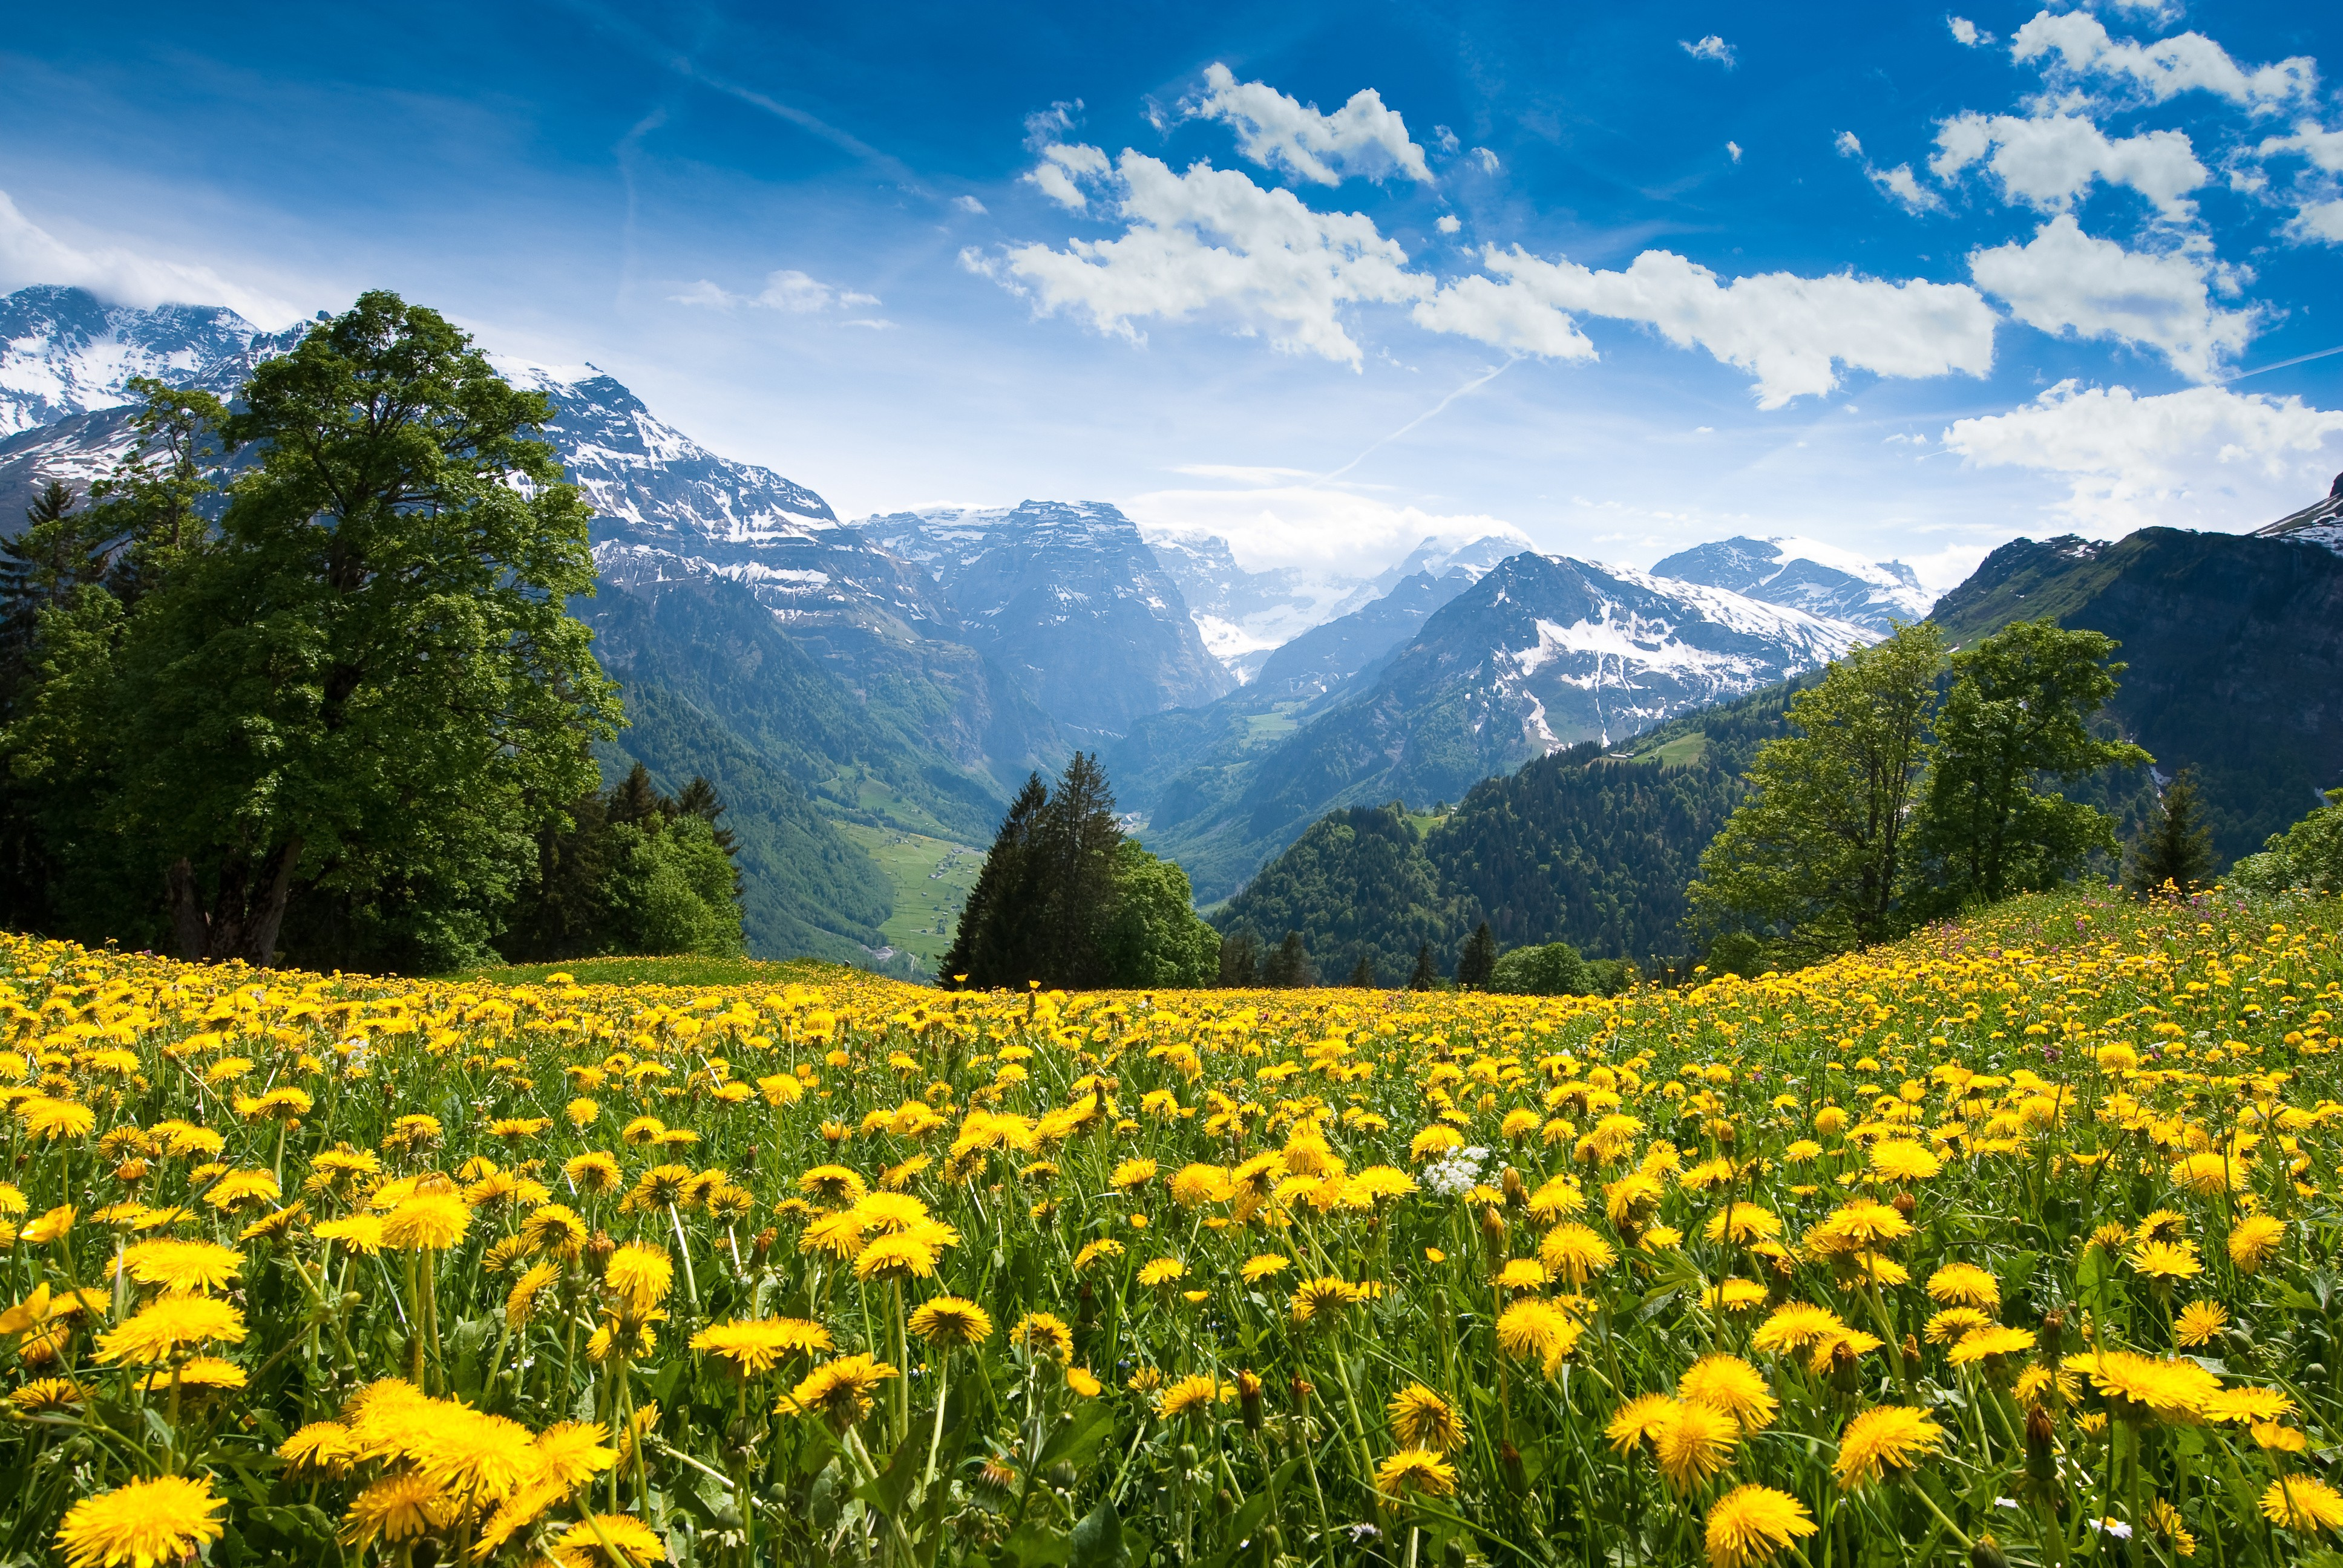 wallpaper alps, 4k, hd wallpaper, france, mountains, dandelion